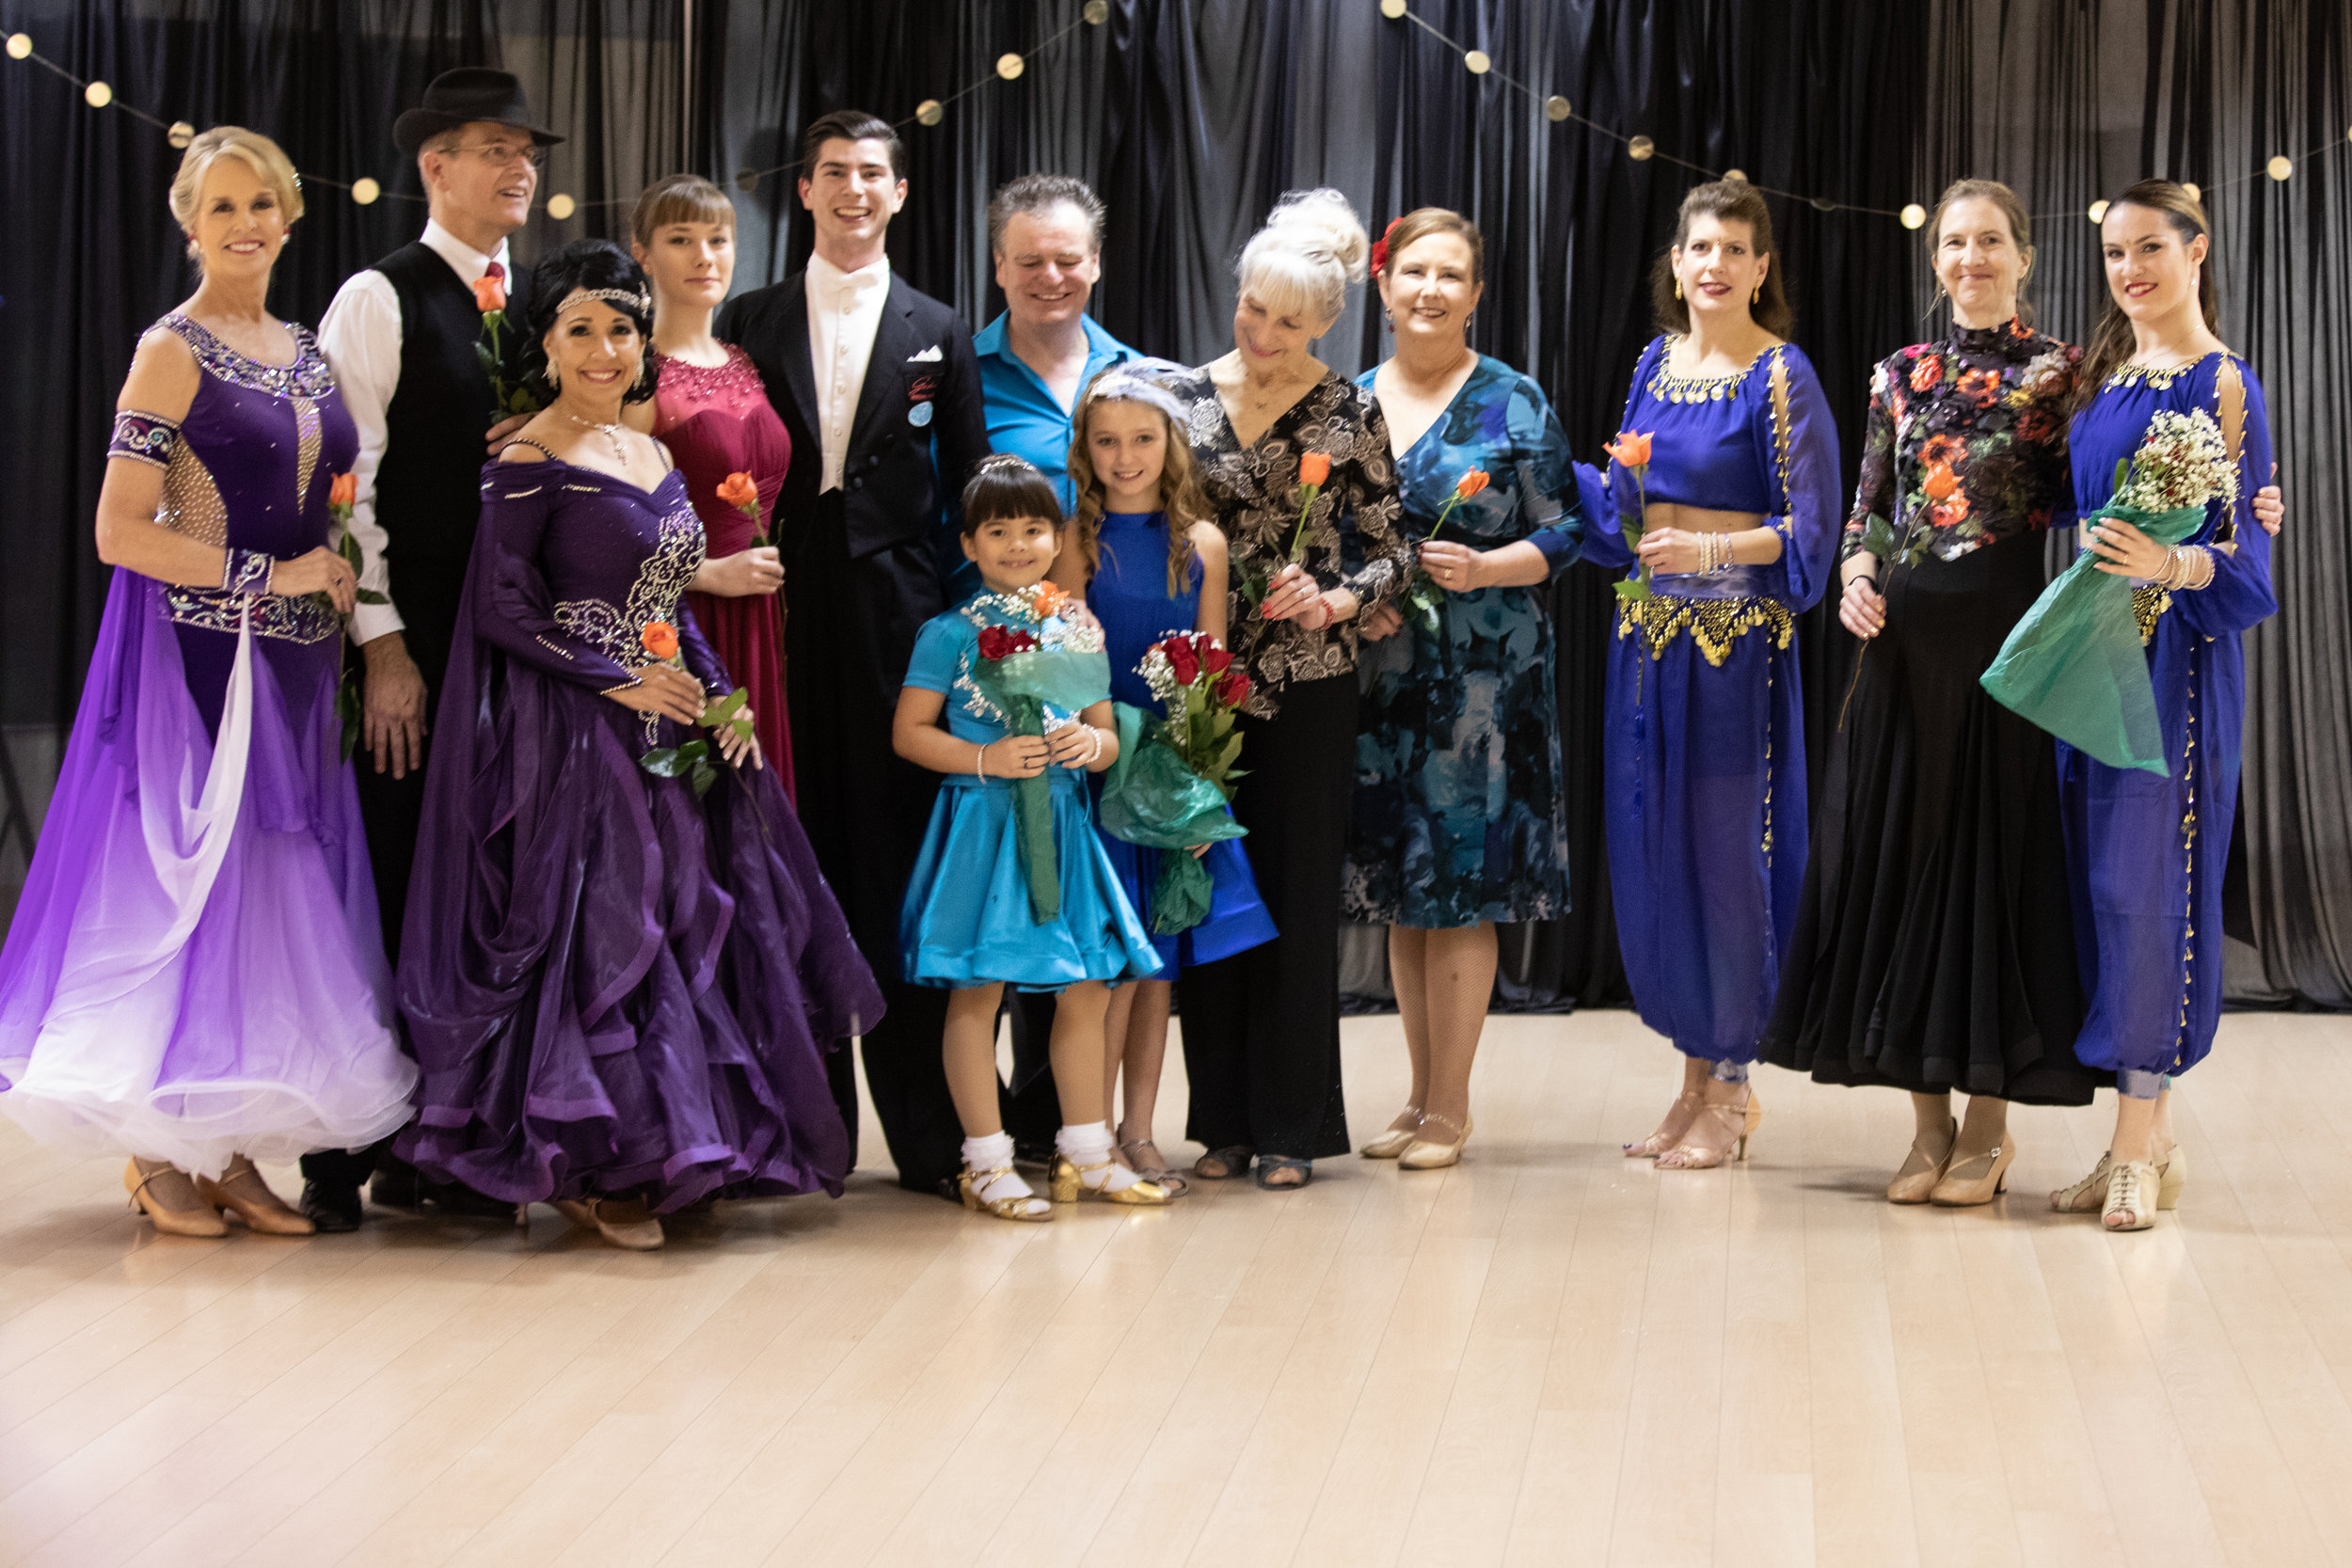 DanceFireShowcaseSpectacular2018-152.jpg